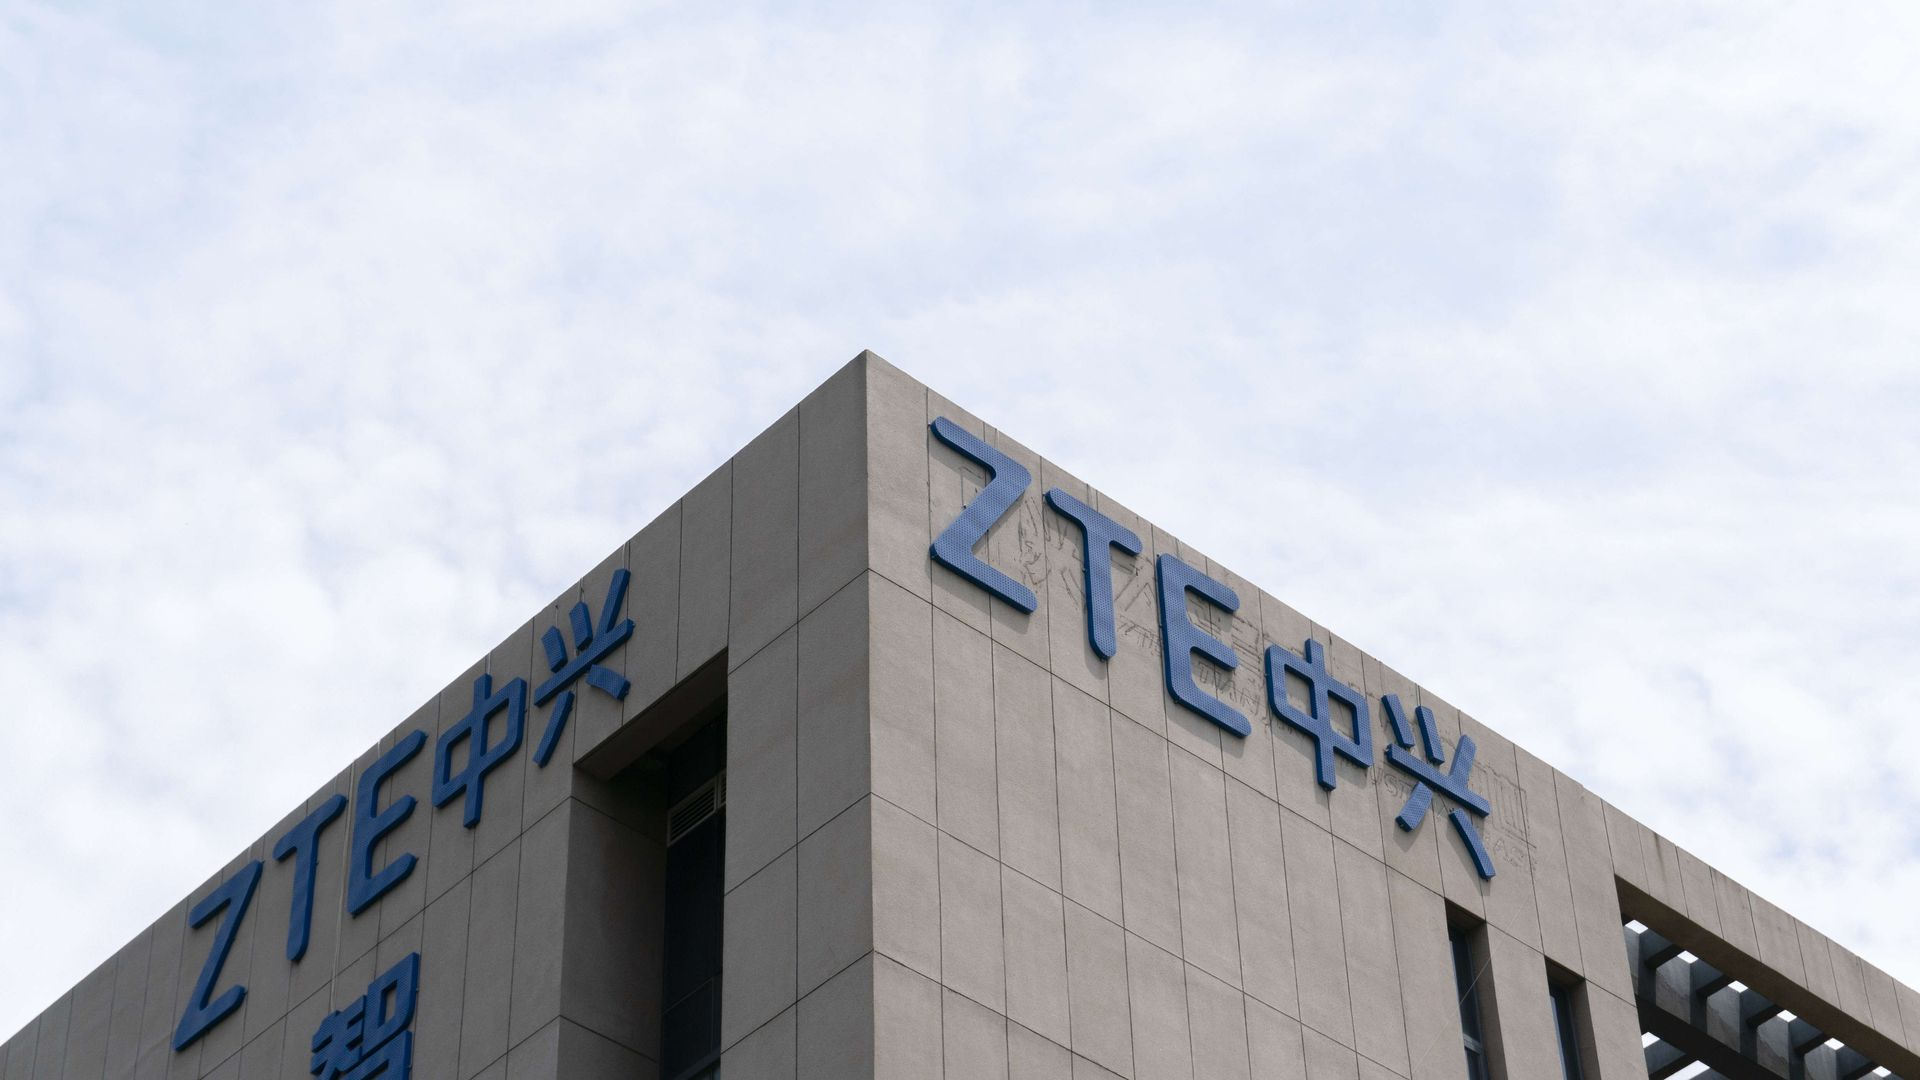 Corner of a building with ZTE logo against blue sky